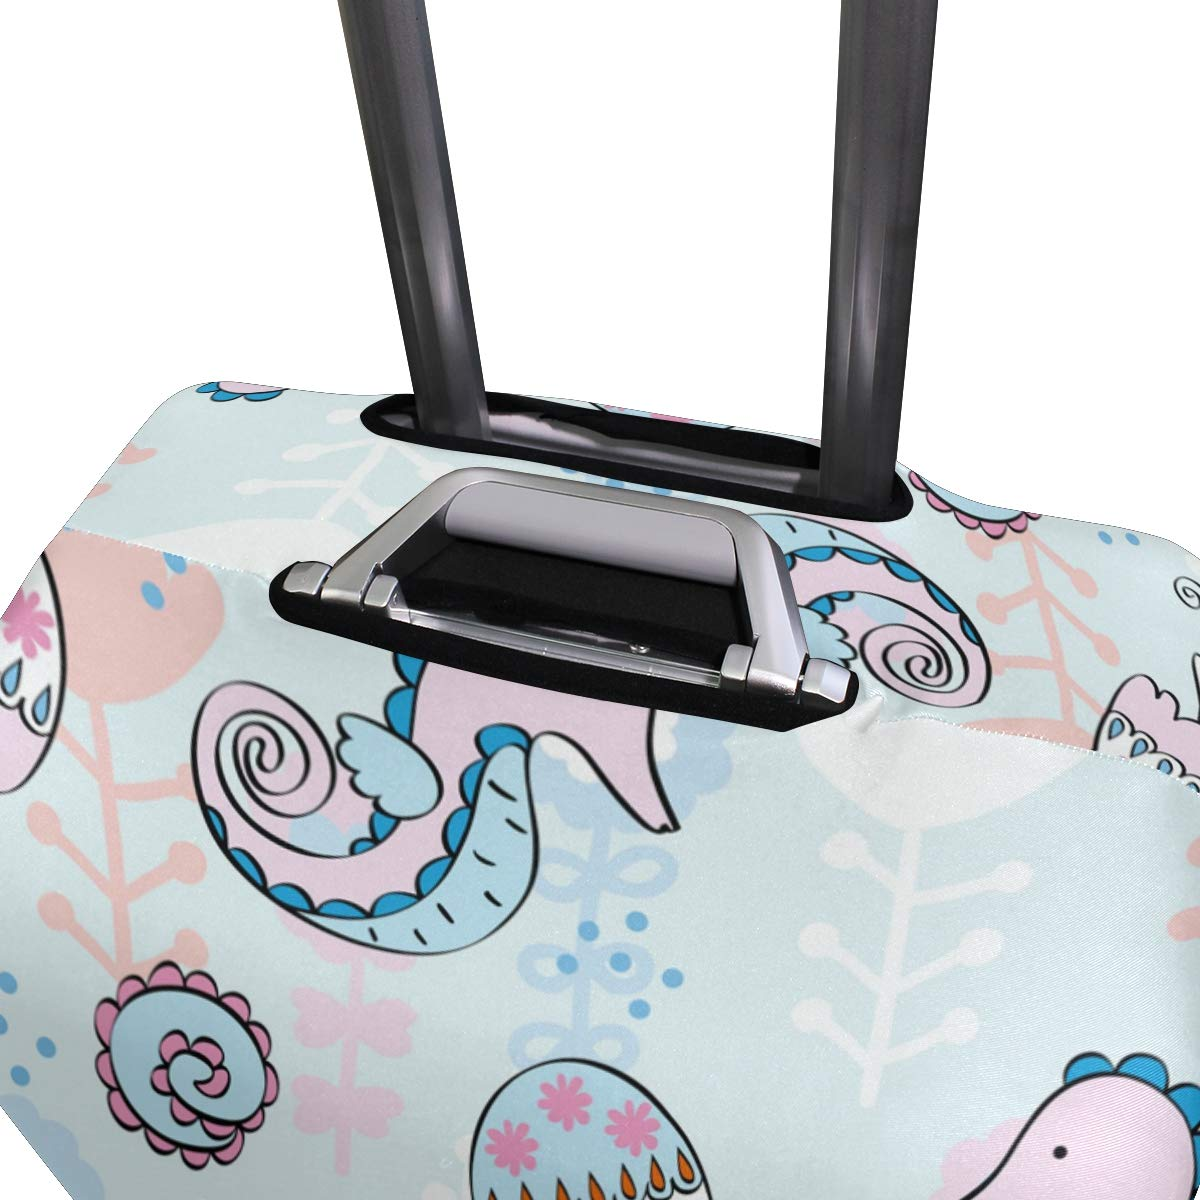 Baggage Covers Simple Paint Dolphin Jellyfish Sea Horse Washable Protective Case